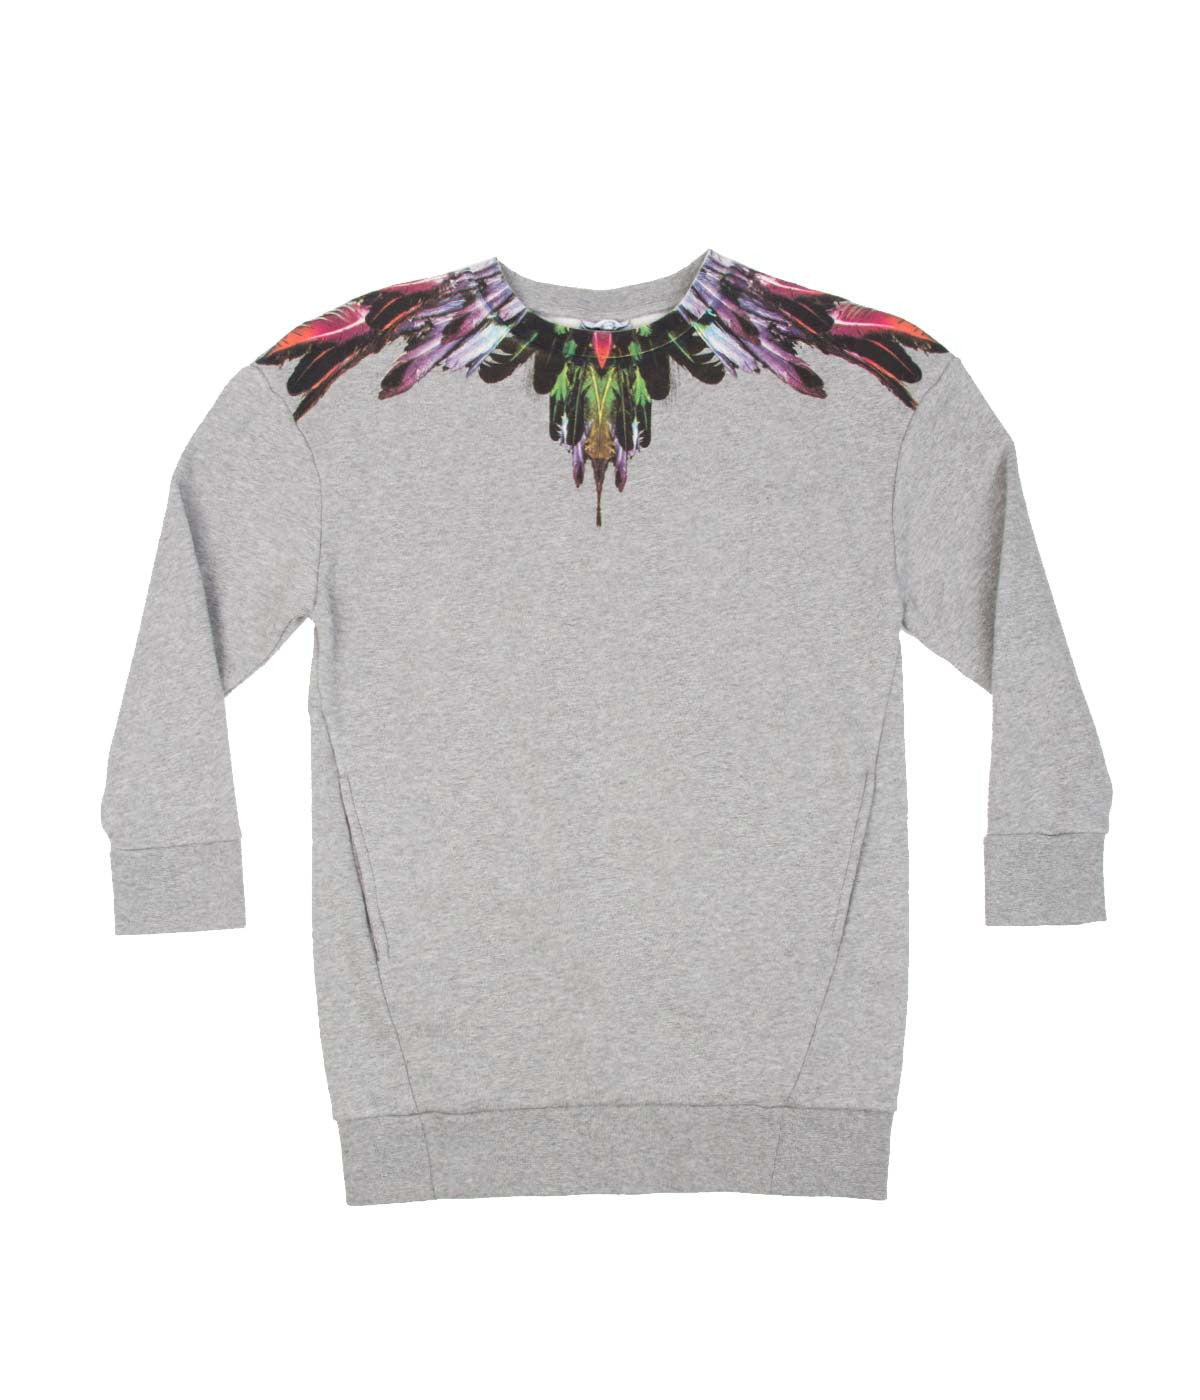 Grey Feathers Print Sweatshirt